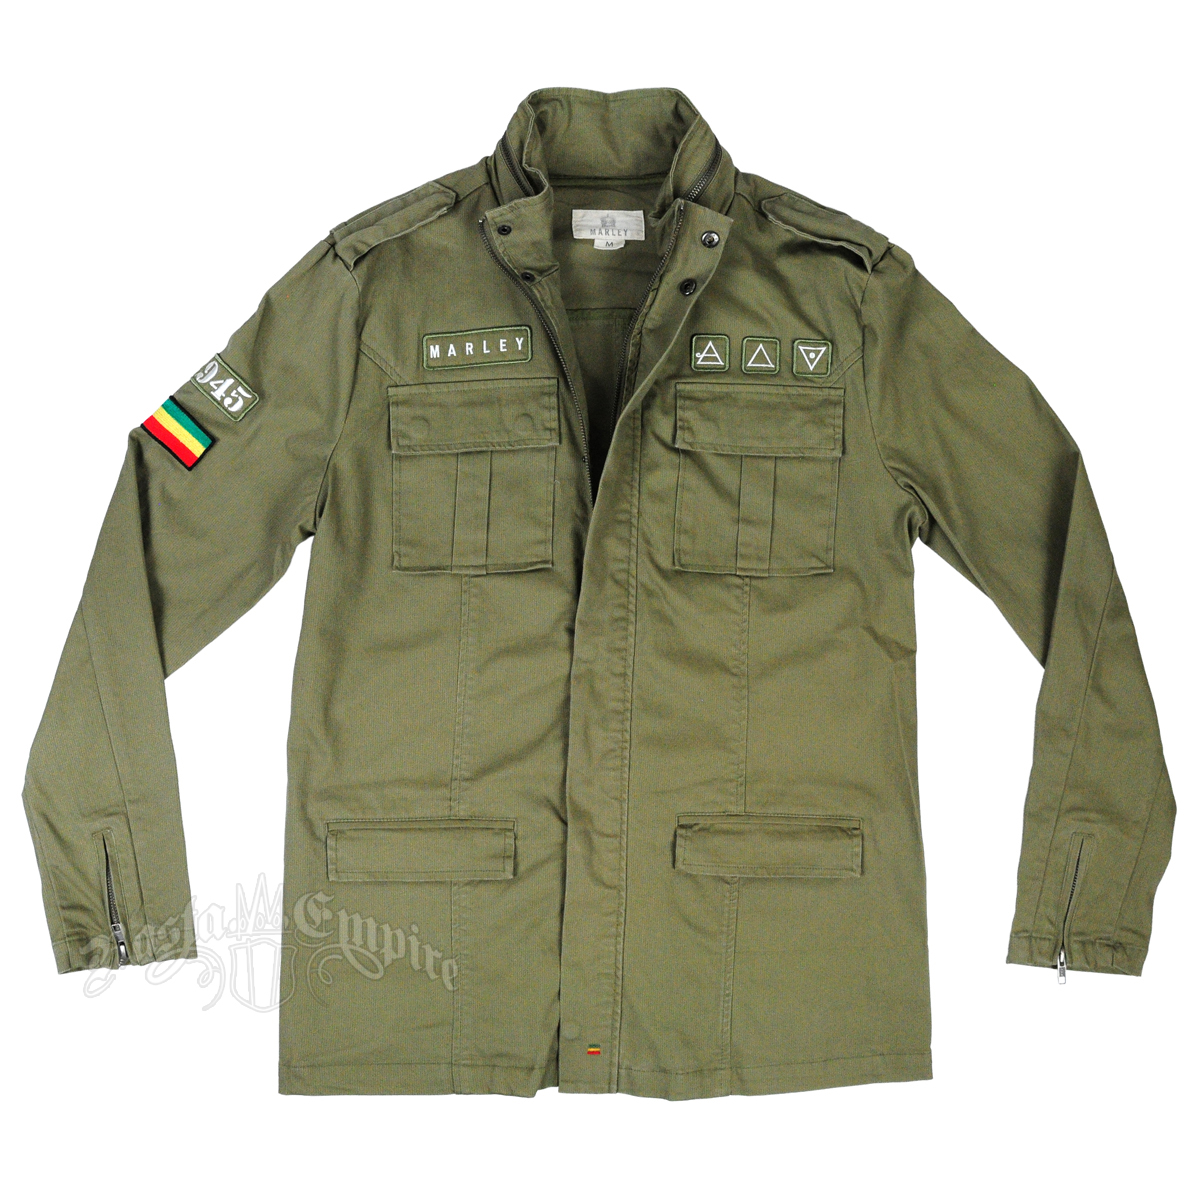 Marley Olive Green Military Jacket - Men's at RastaEmpire.com